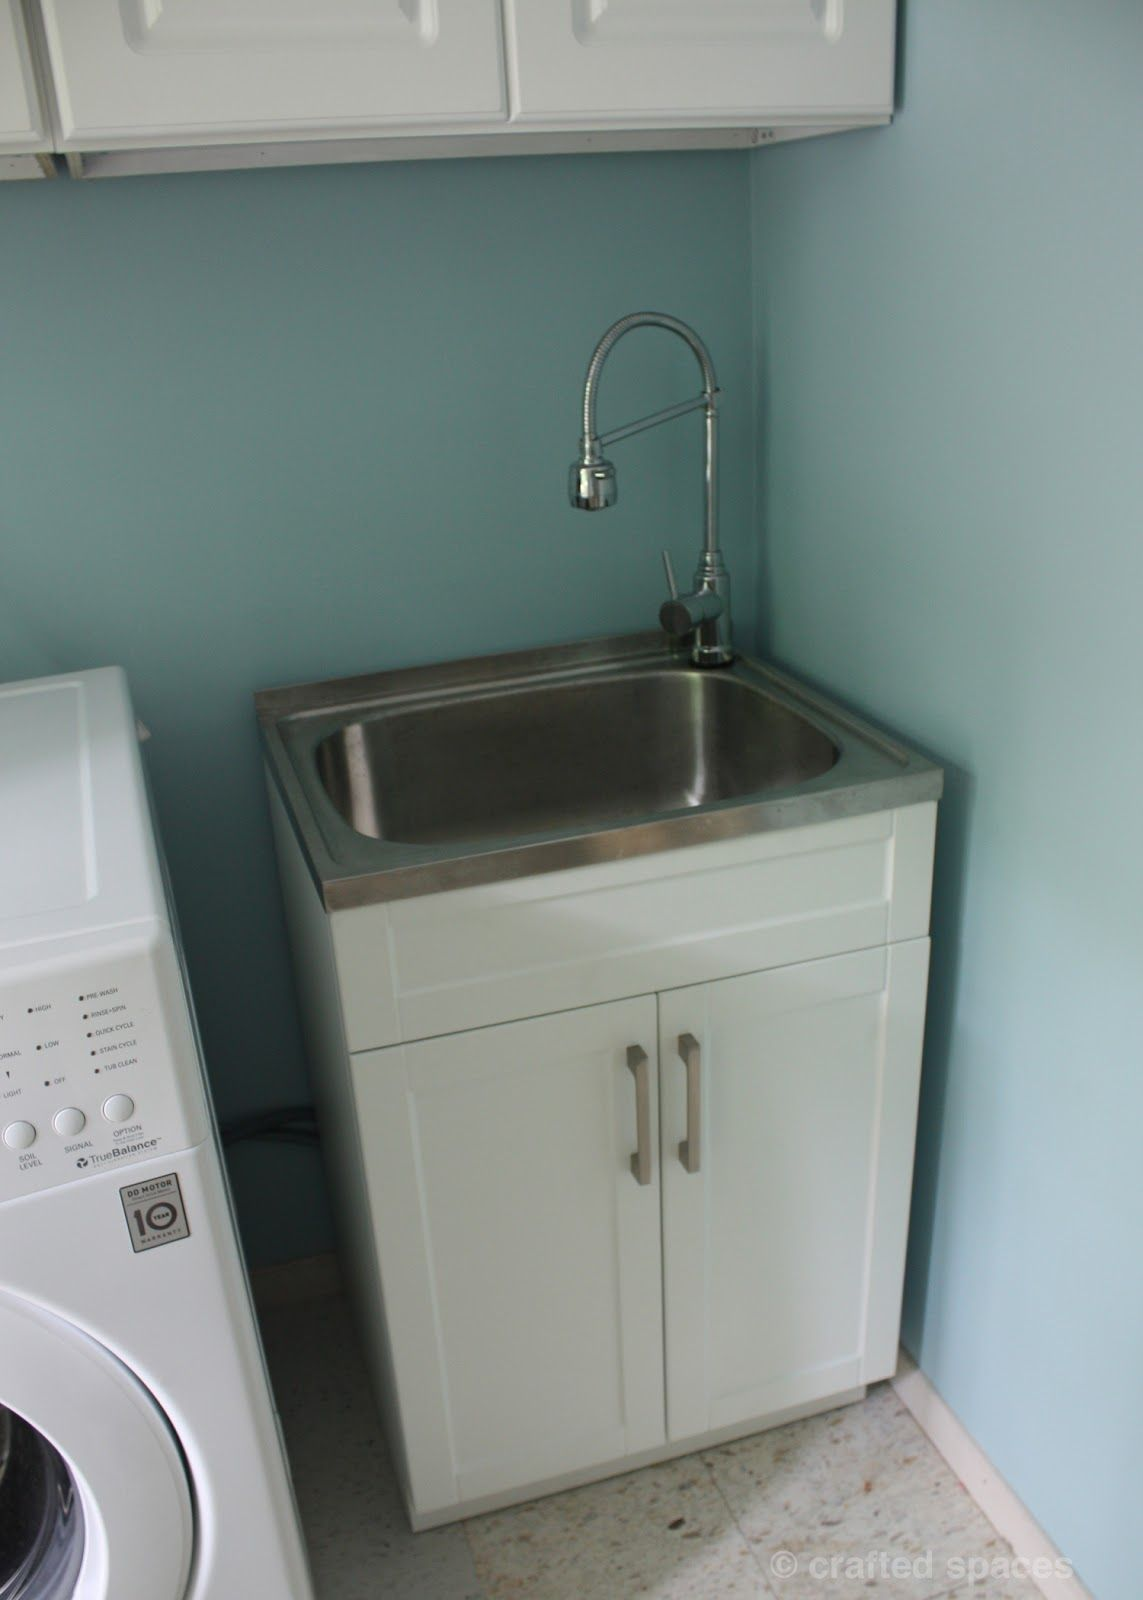 At Home Laundry Room Makeover Laundry Room Sink Laundry Room